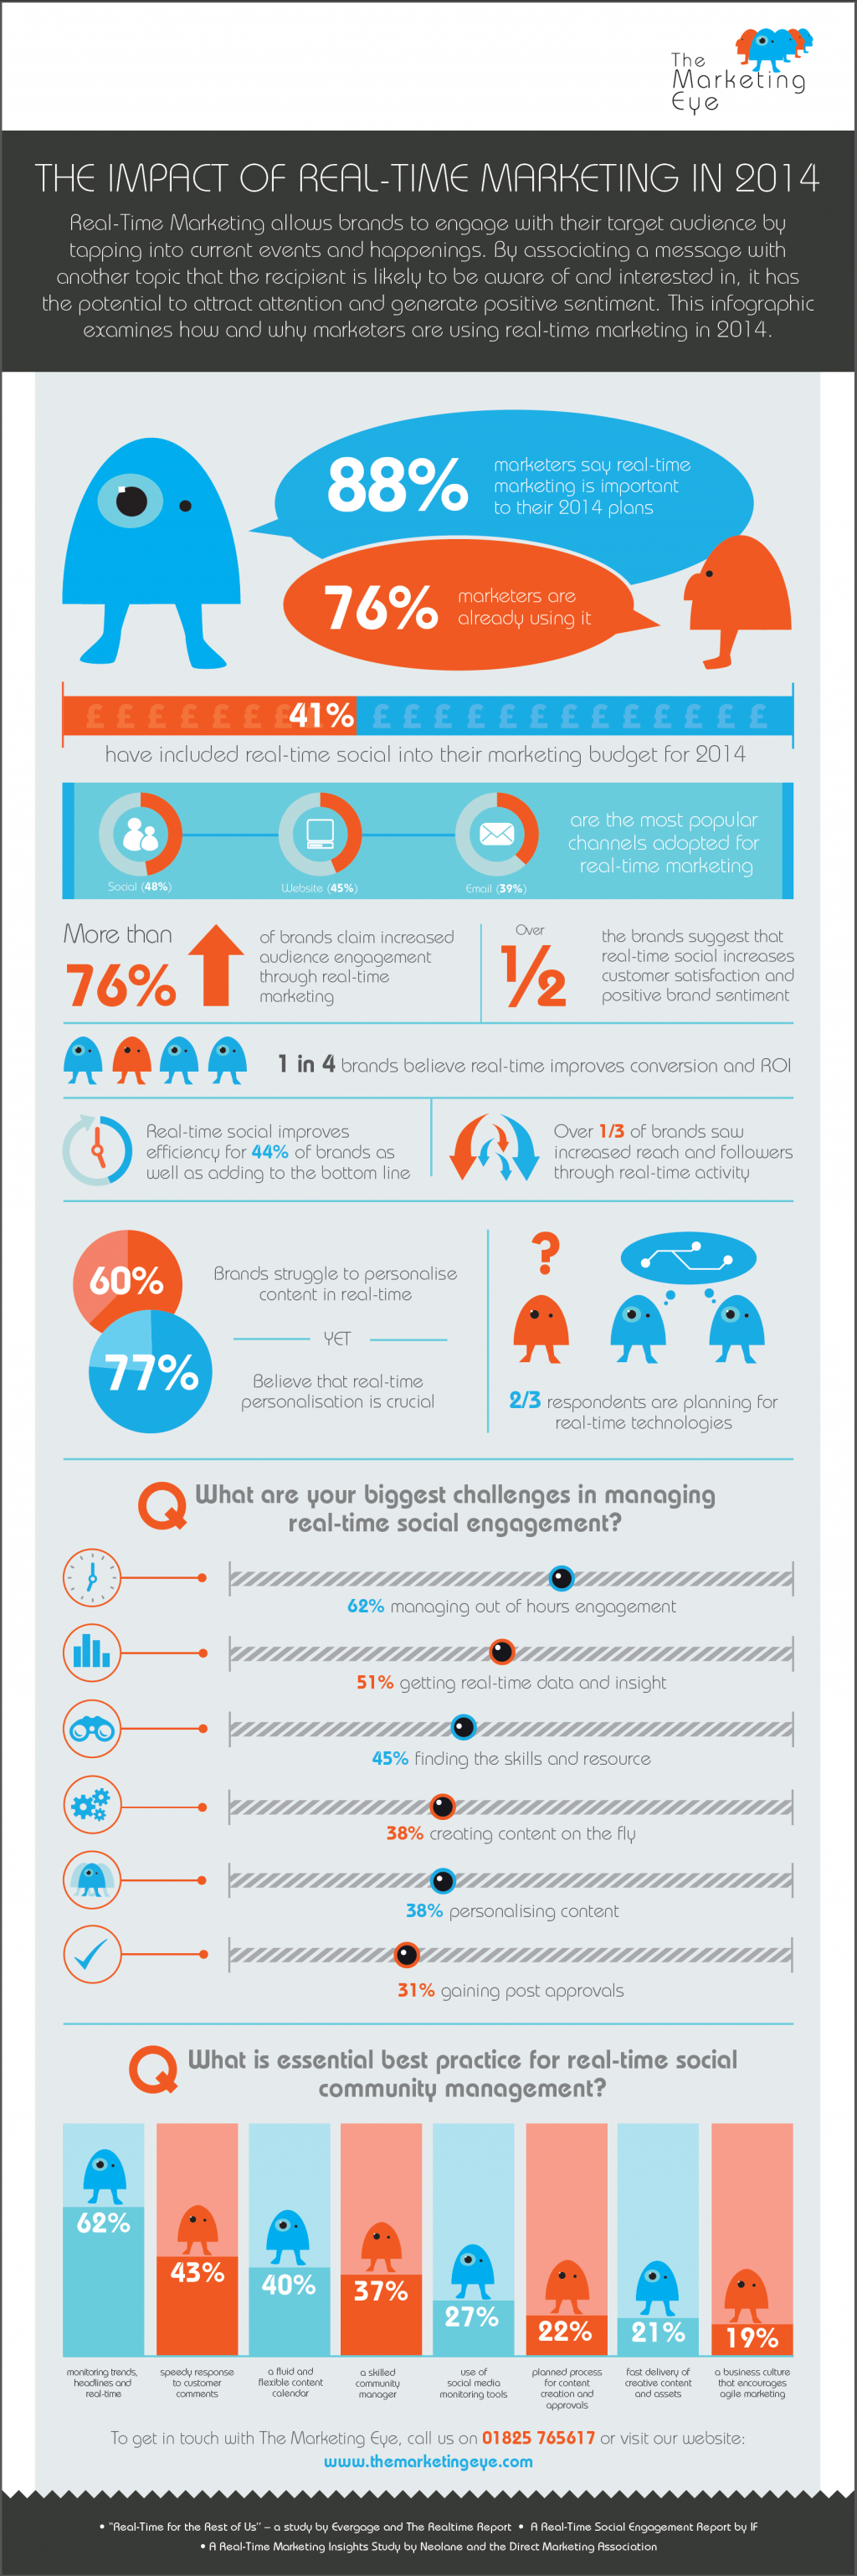 Infographic: Marketing in 2014